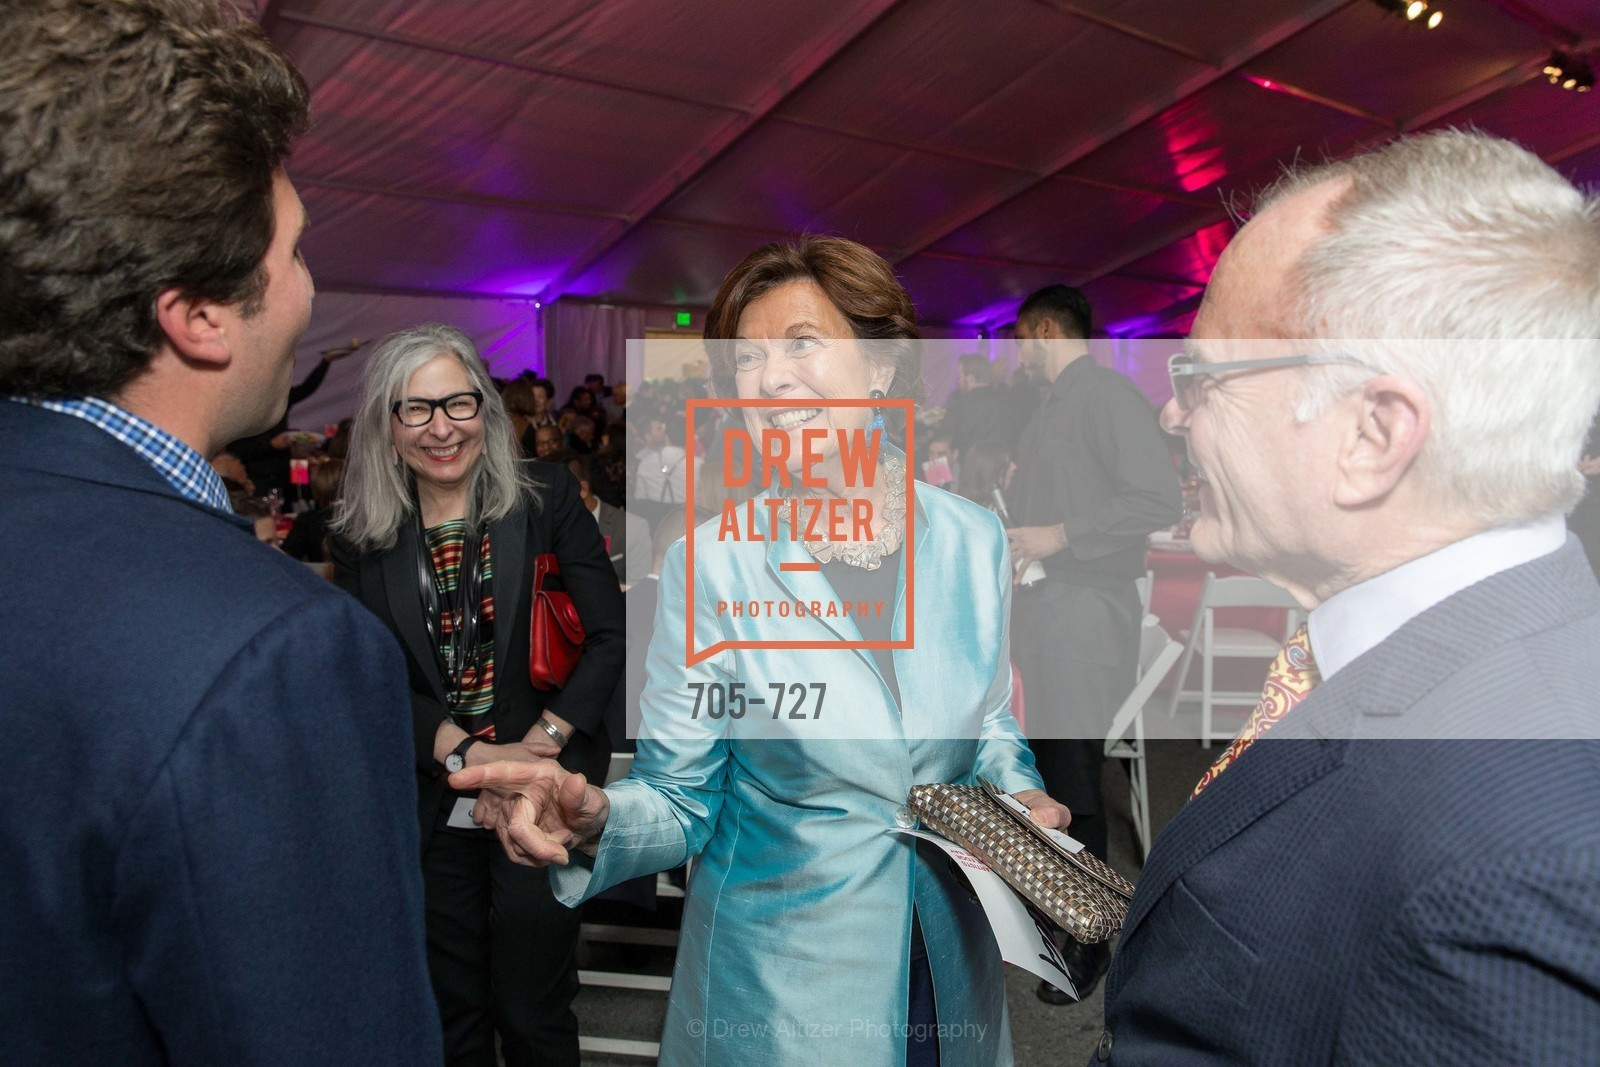 Matthew Goldman, Mary Robinson, Andrew Belschner, SAN FRANCISCO ART INSTITUTE Gala Honoring Art Visionary and Advocate ROSELYNE CHROMAN SWIG, US, May 13th, 2015,Drew Altizer, Drew Altizer Photography, full-service agency, private events, San Francisco photographer, photographer california